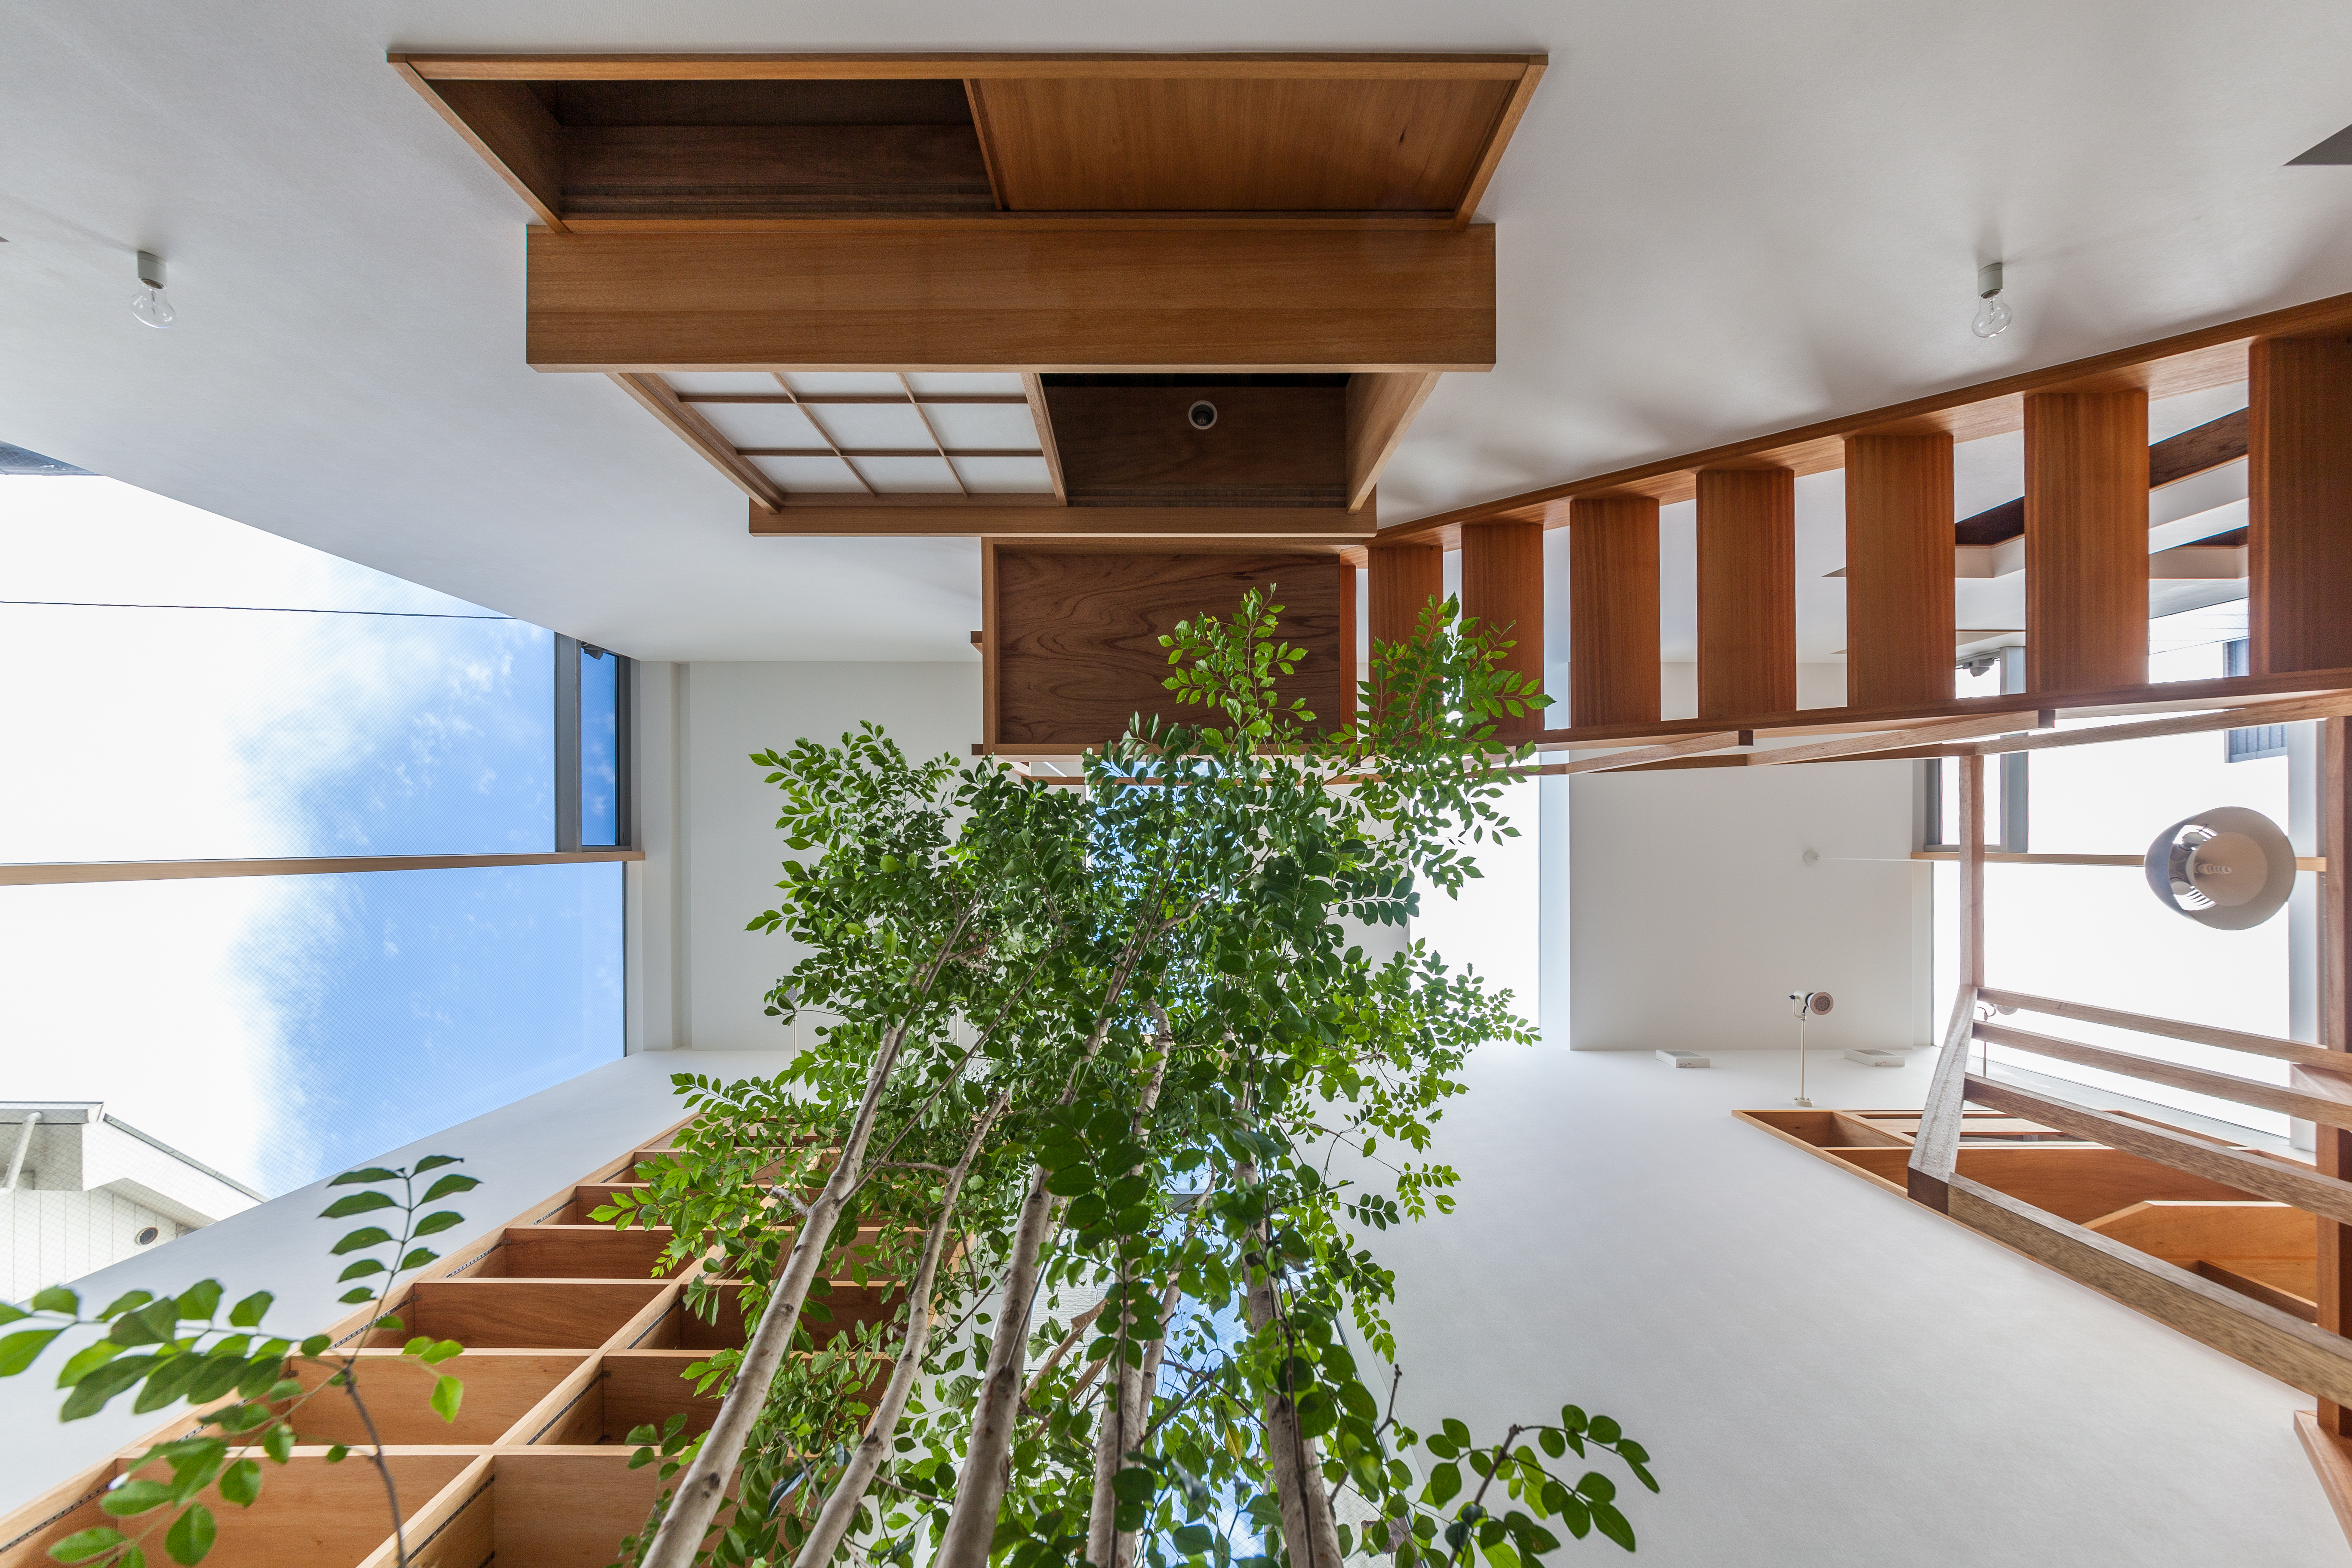 Tokyo's House in Ouji blurs the line between home and narrow city streets